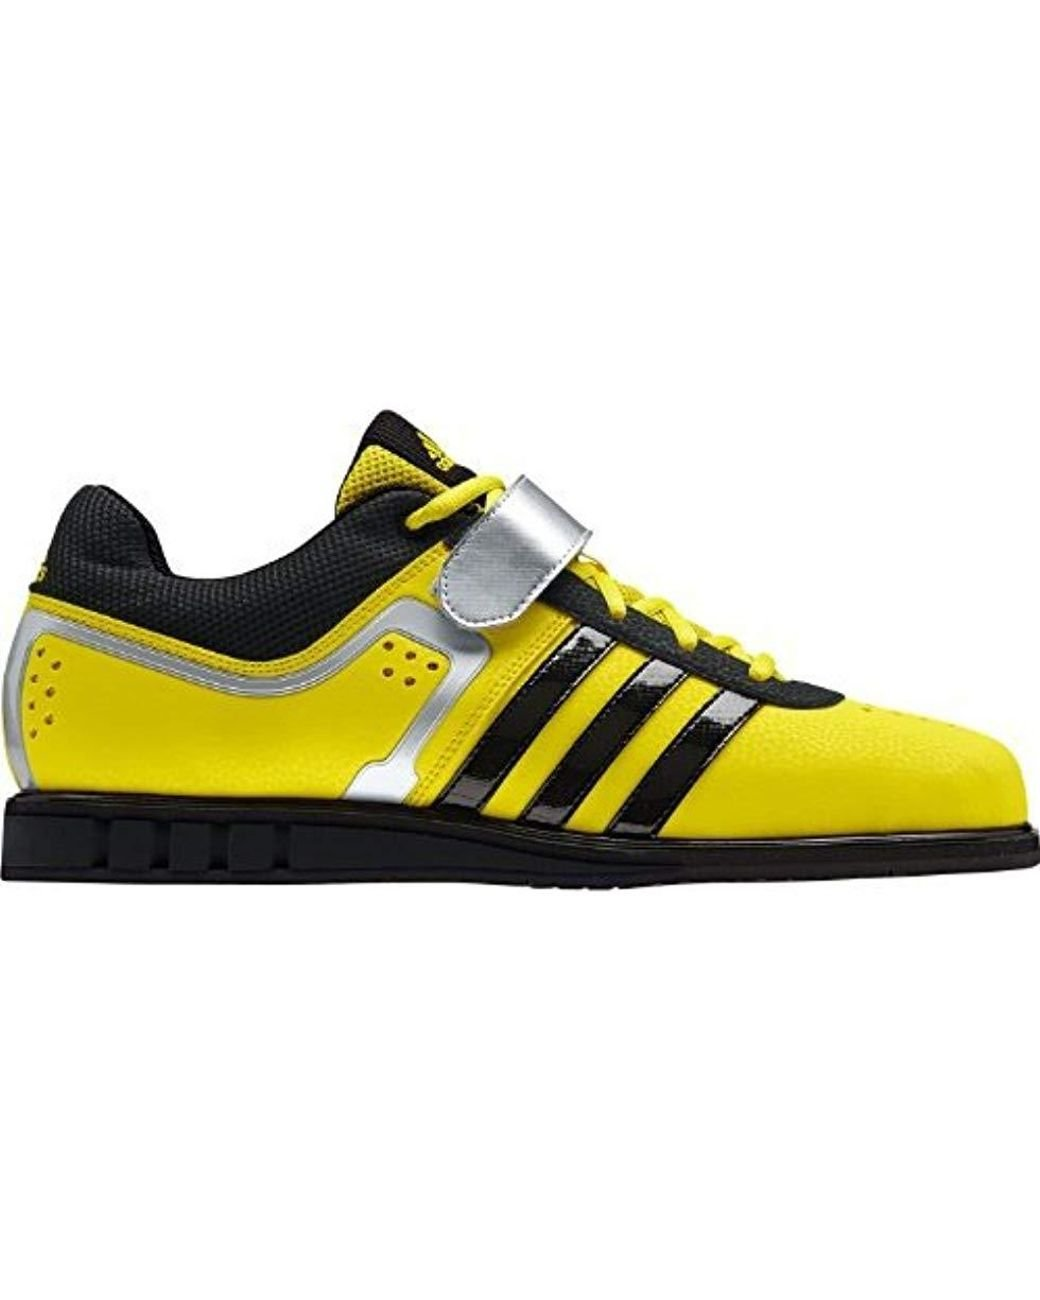 Men's Yellow Power Perfect Ii, Multisport Indoor Shoes